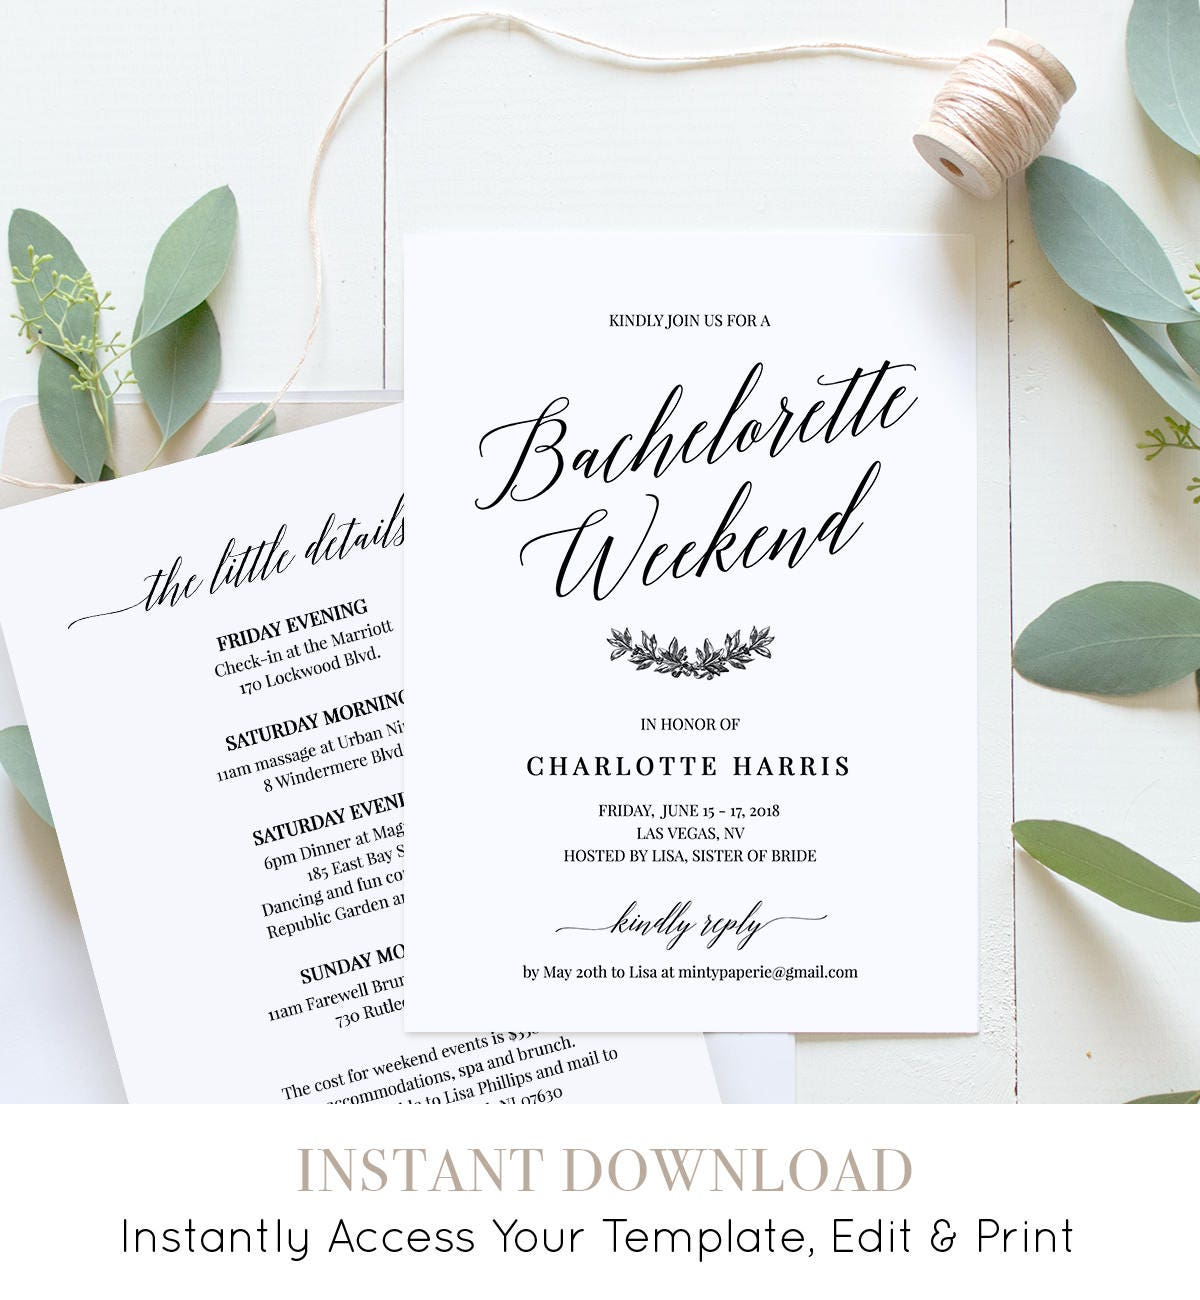 bachelorette party weekend invitation itinerary agenda weekend events 100 editable template. Black Bedroom Furniture Sets. Home Design Ideas